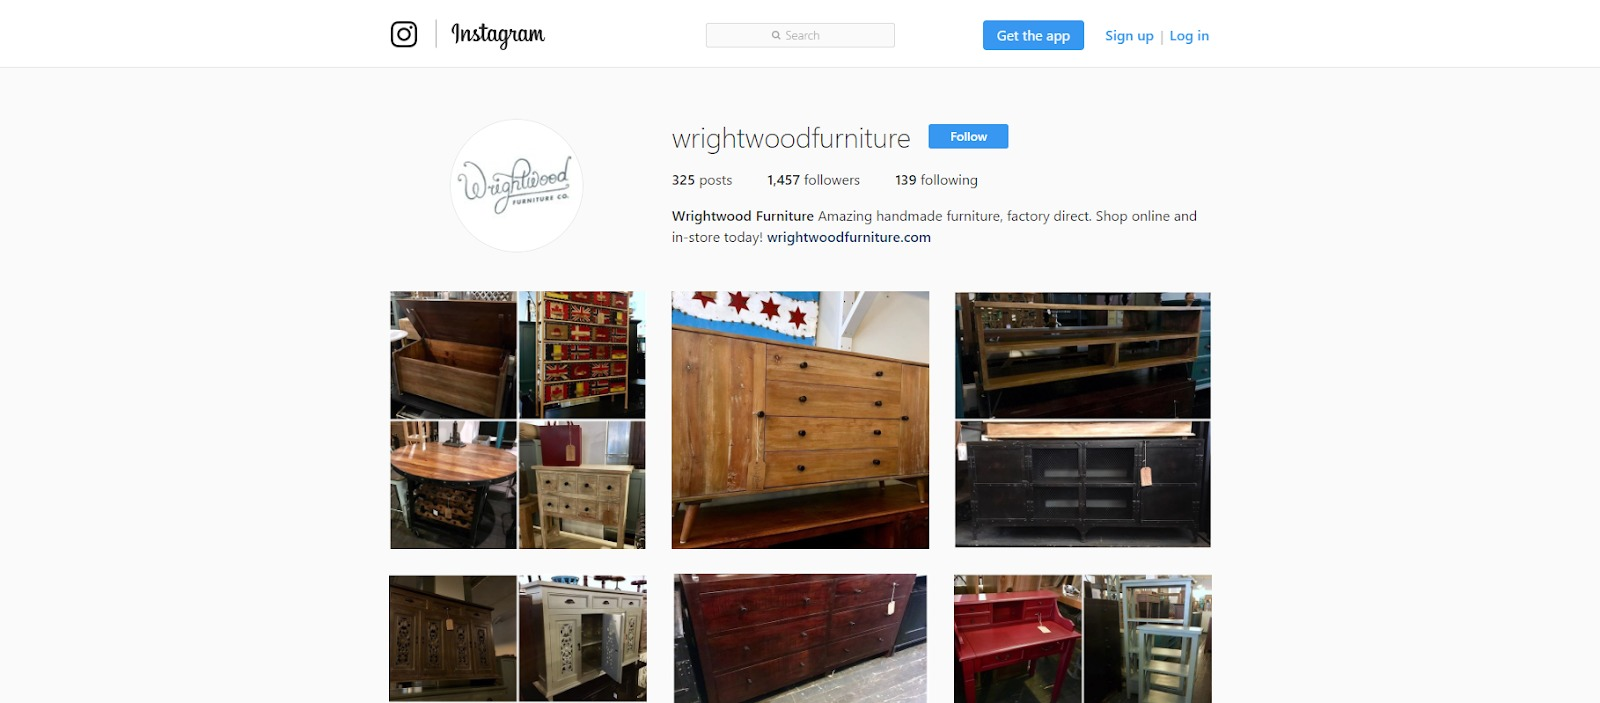 Wrightwood Furniture Instagram screenshot.